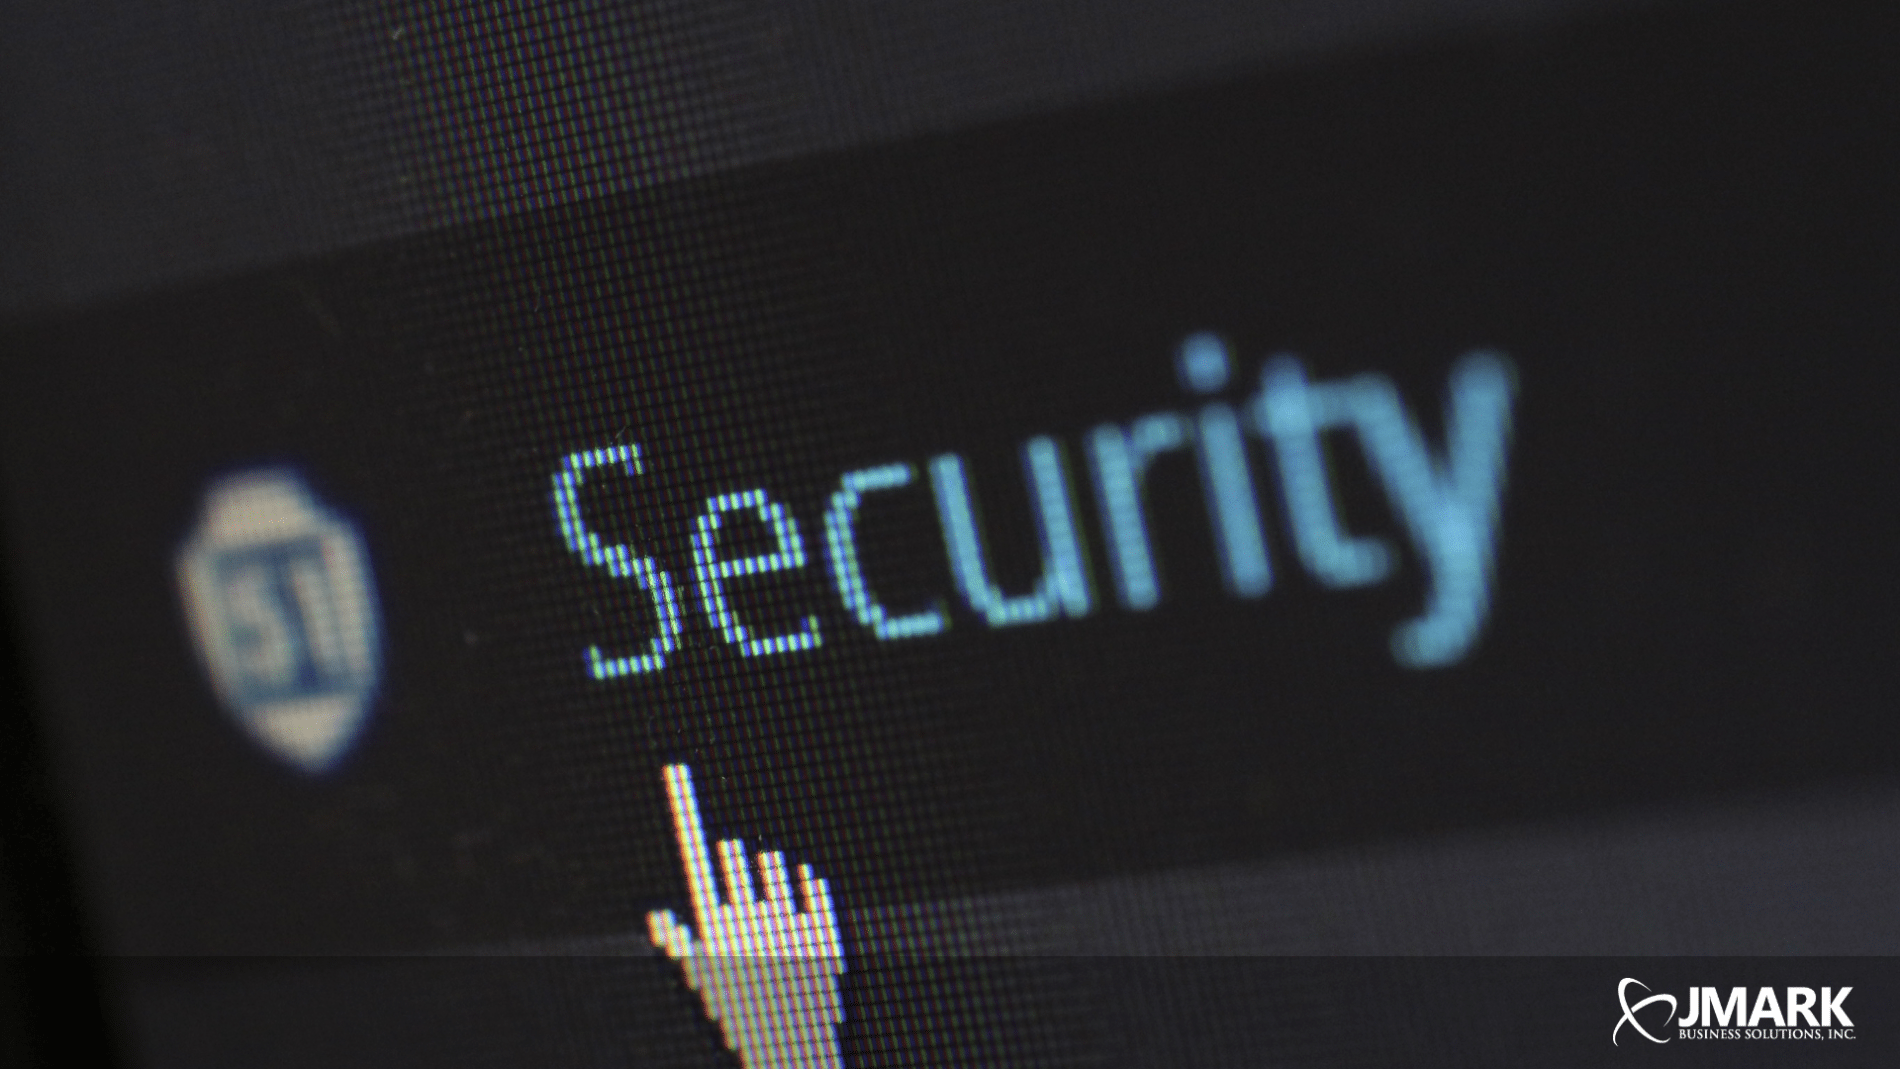 Will Your Internal I.T. Staff Really Be Able to Stop a Cyber Attack?